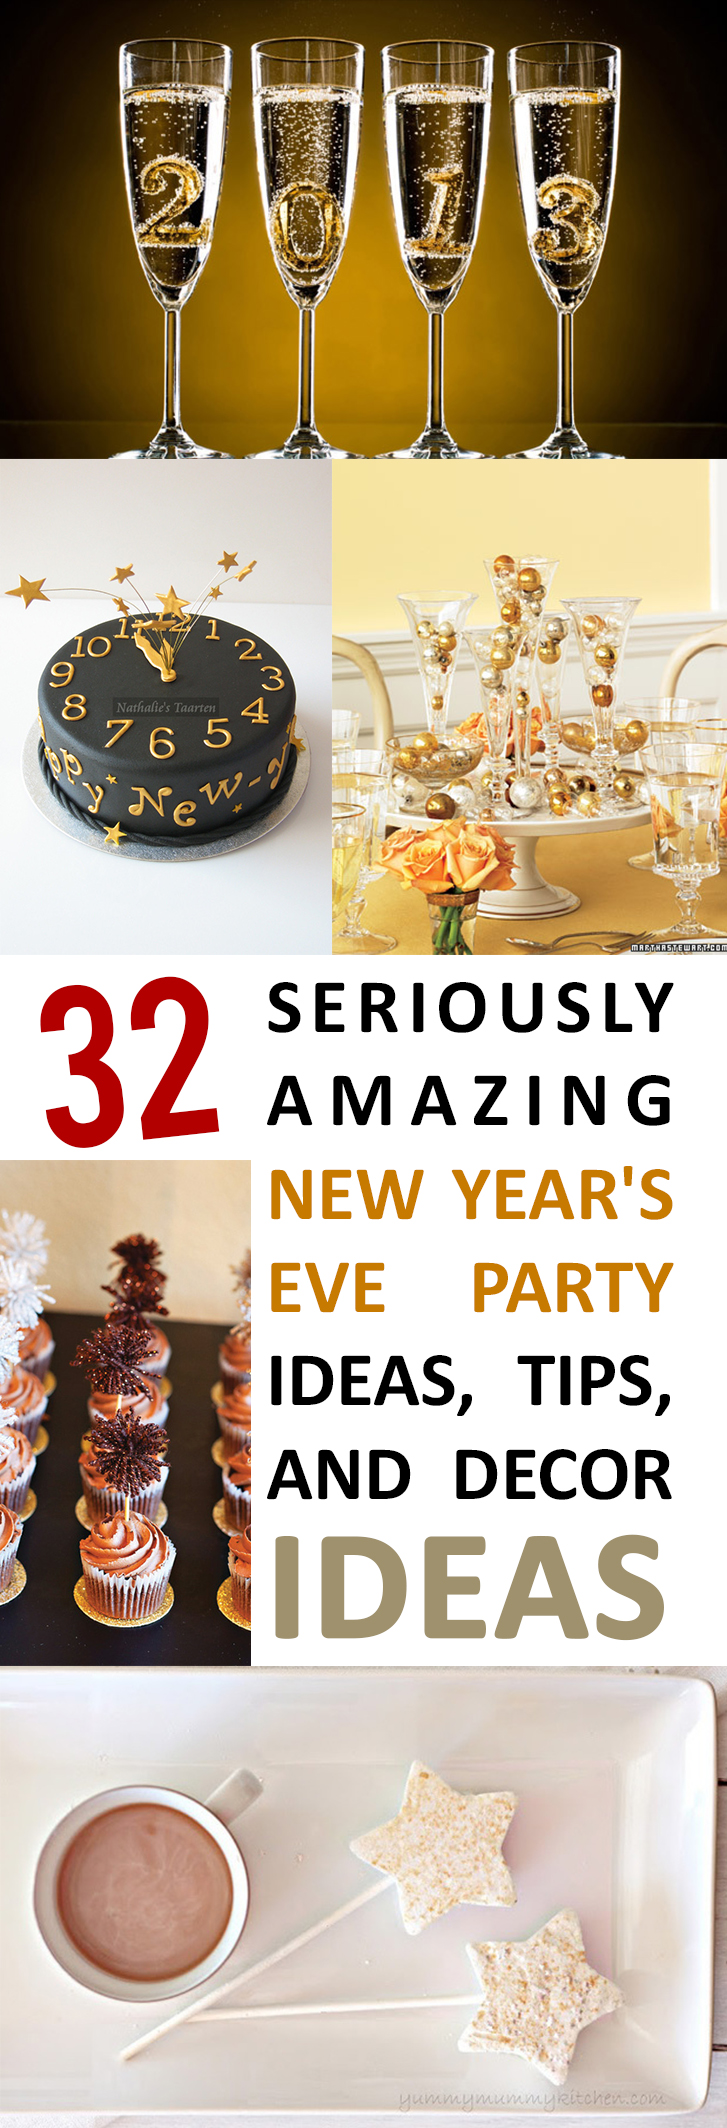 32 seriously amazing new year 39 s eve party ideas tips and decor ideas. Black Bedroom Furniture Sets. Home Design Ideas